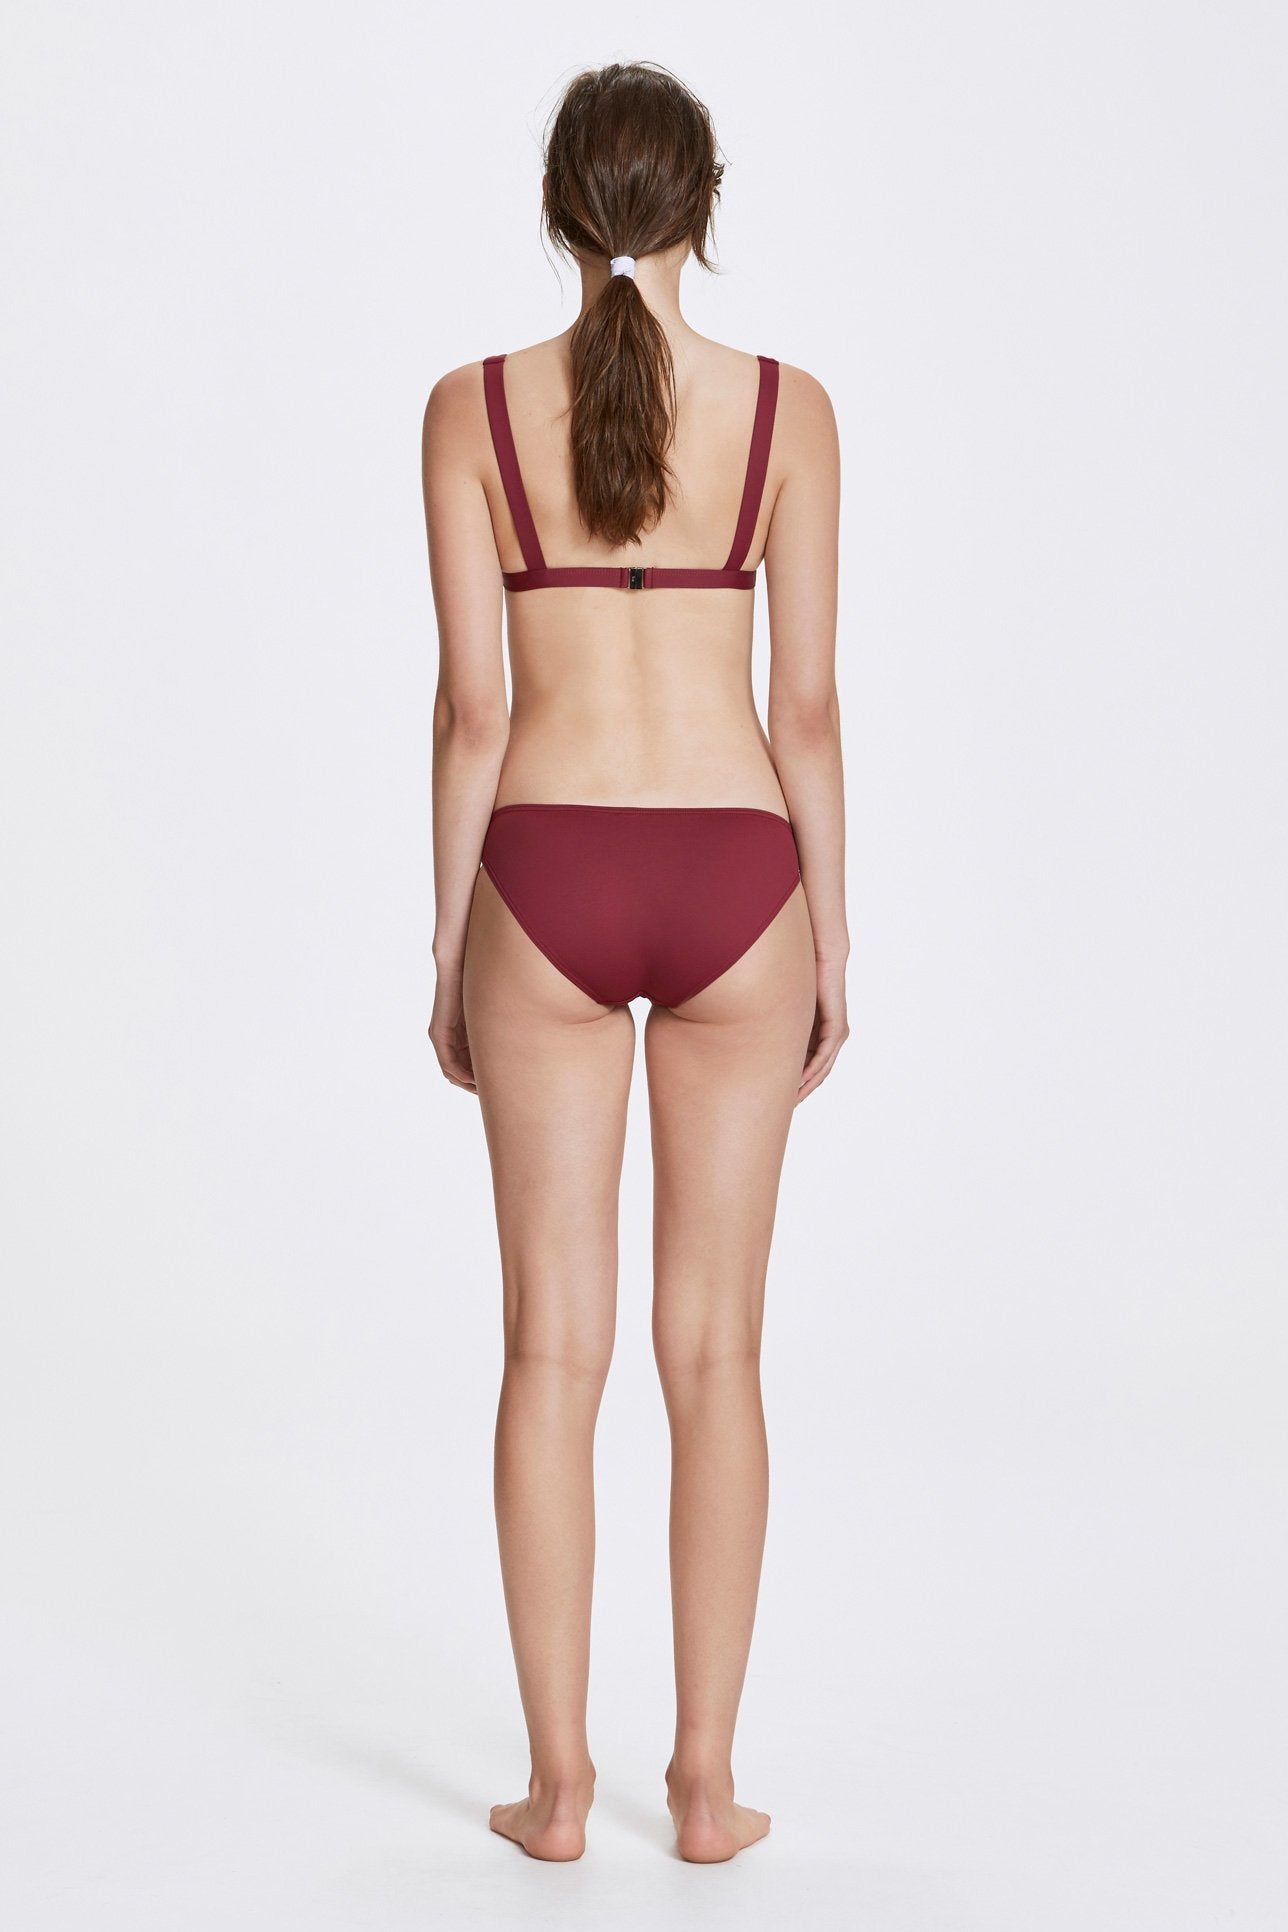 Audrey top - Rhubarb red - Swim top - Her Line